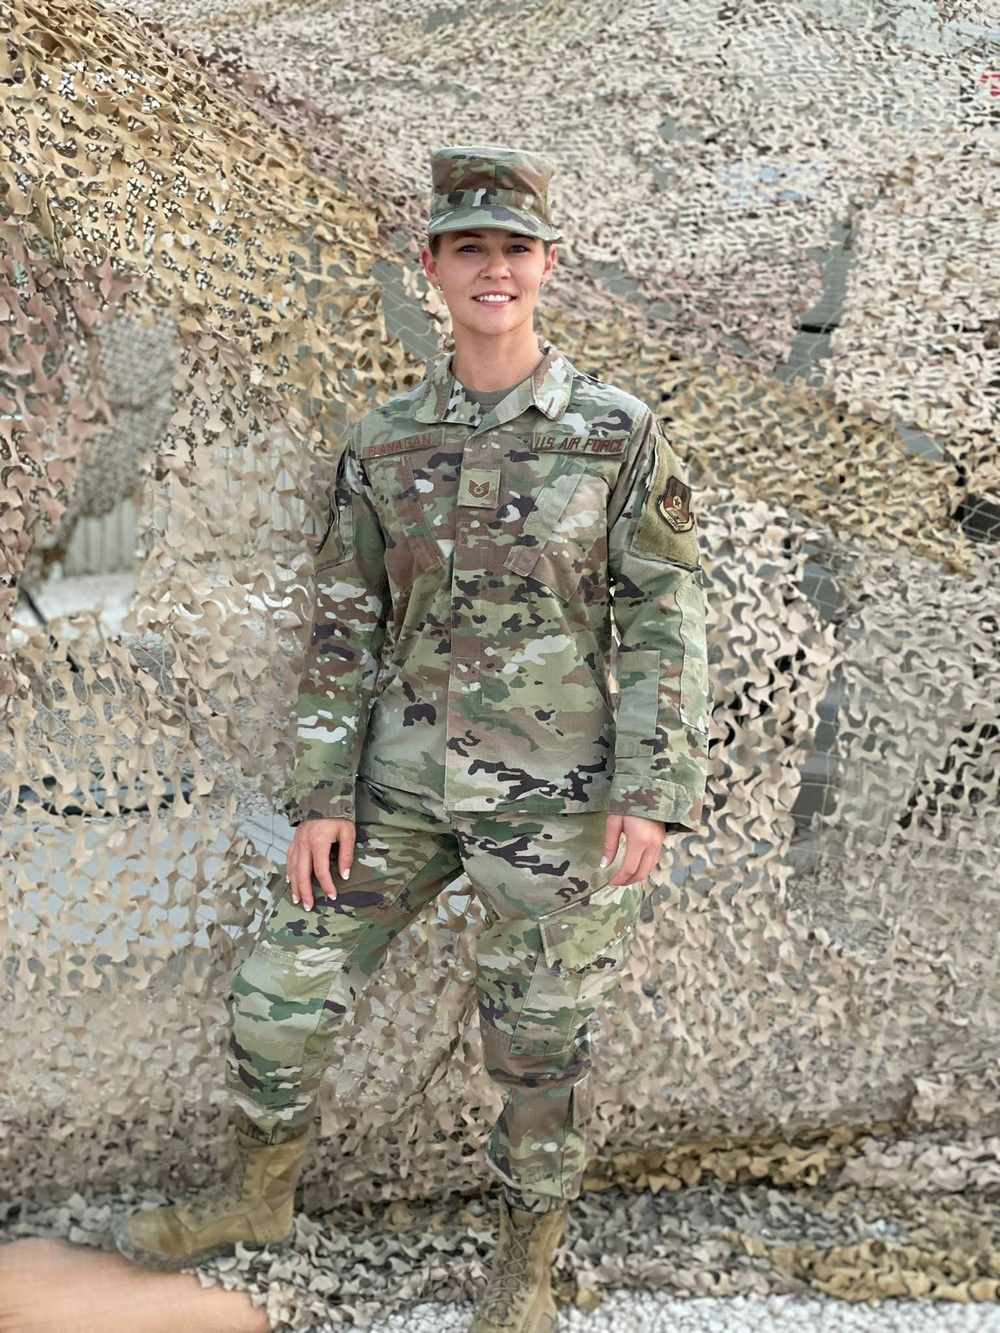 Airman forward deploys to assist with noncombatant evacuation operations